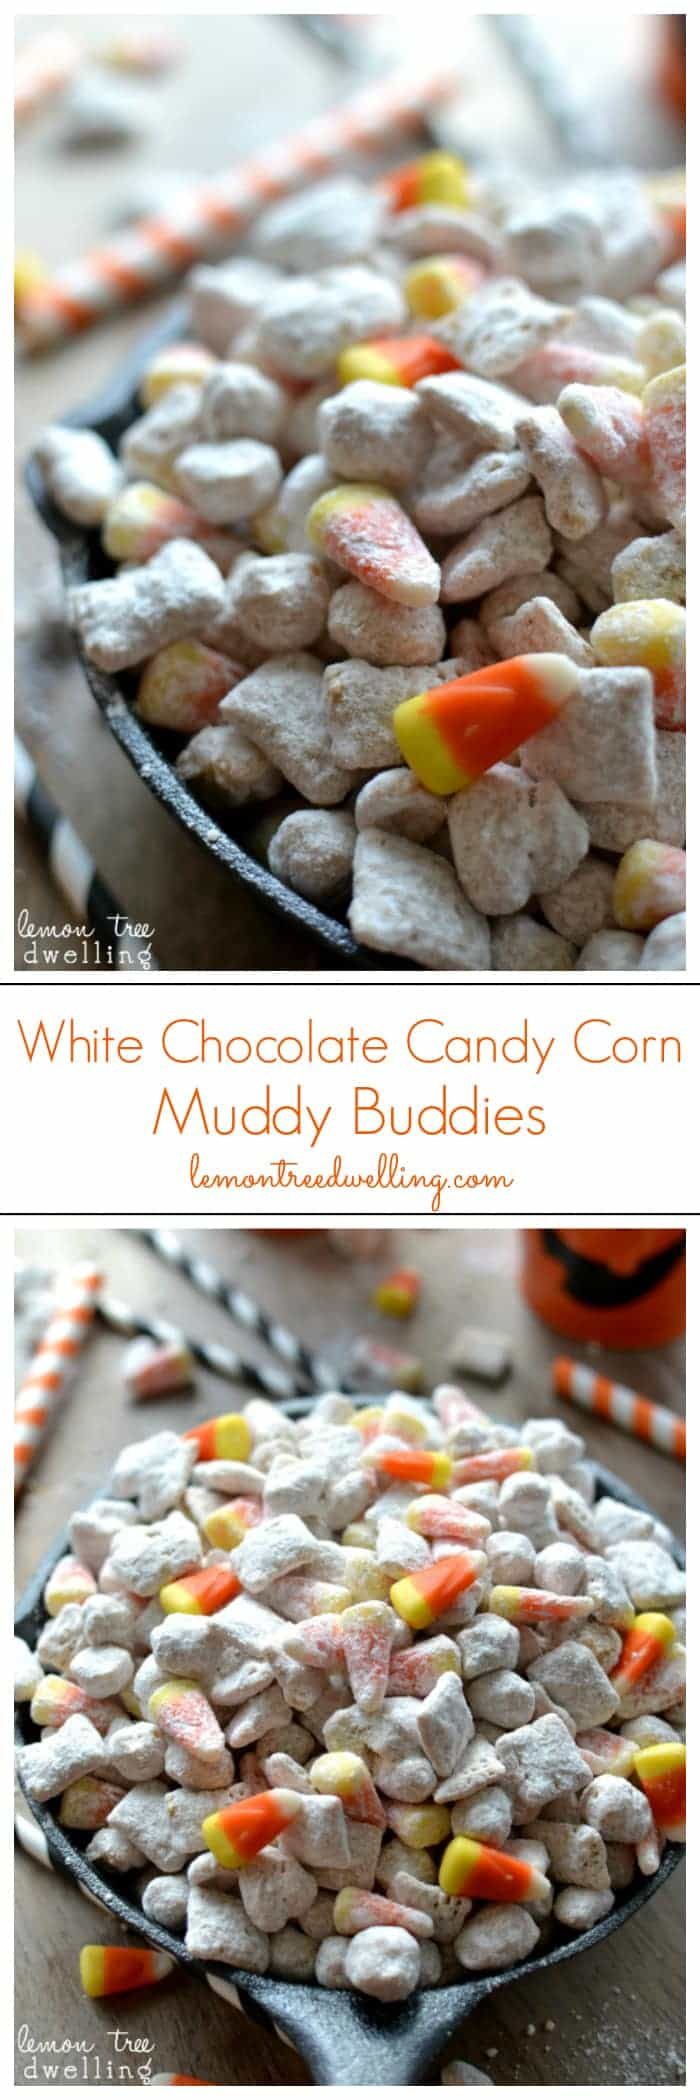 Sweet & Salty White Chocolate Candy Corn Muddy Buddies!